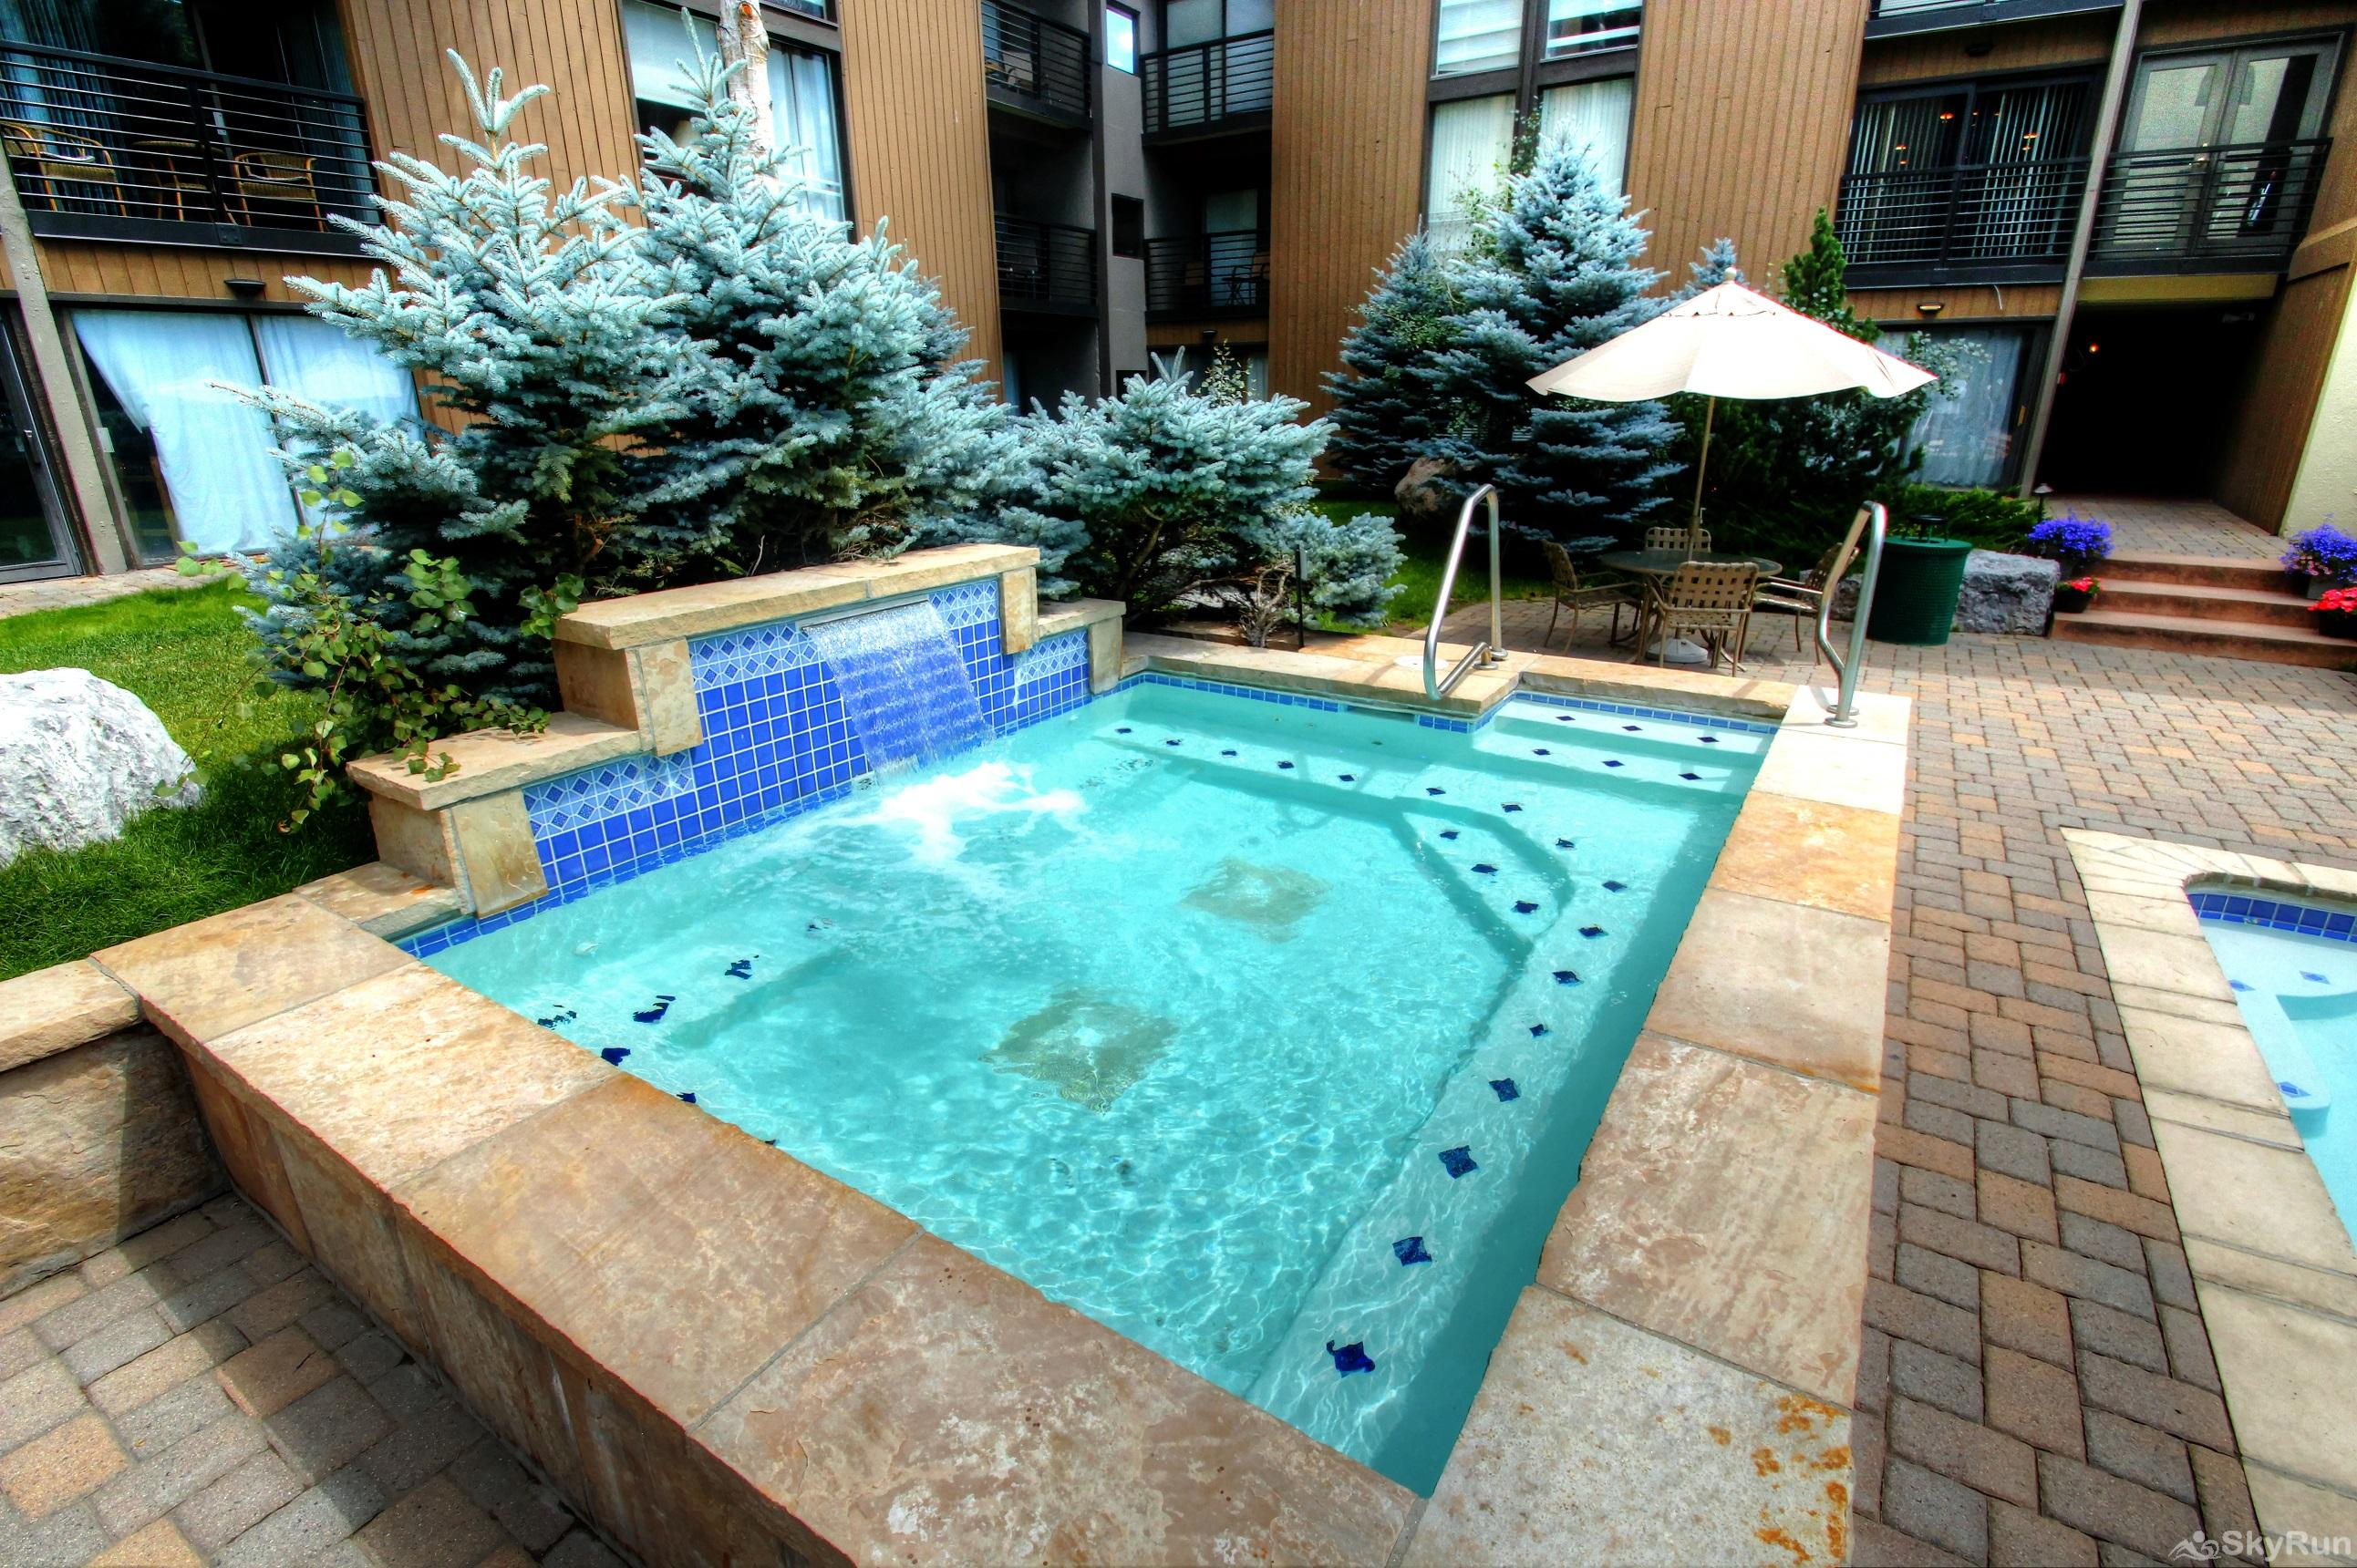 111 Vail International Hot Tub